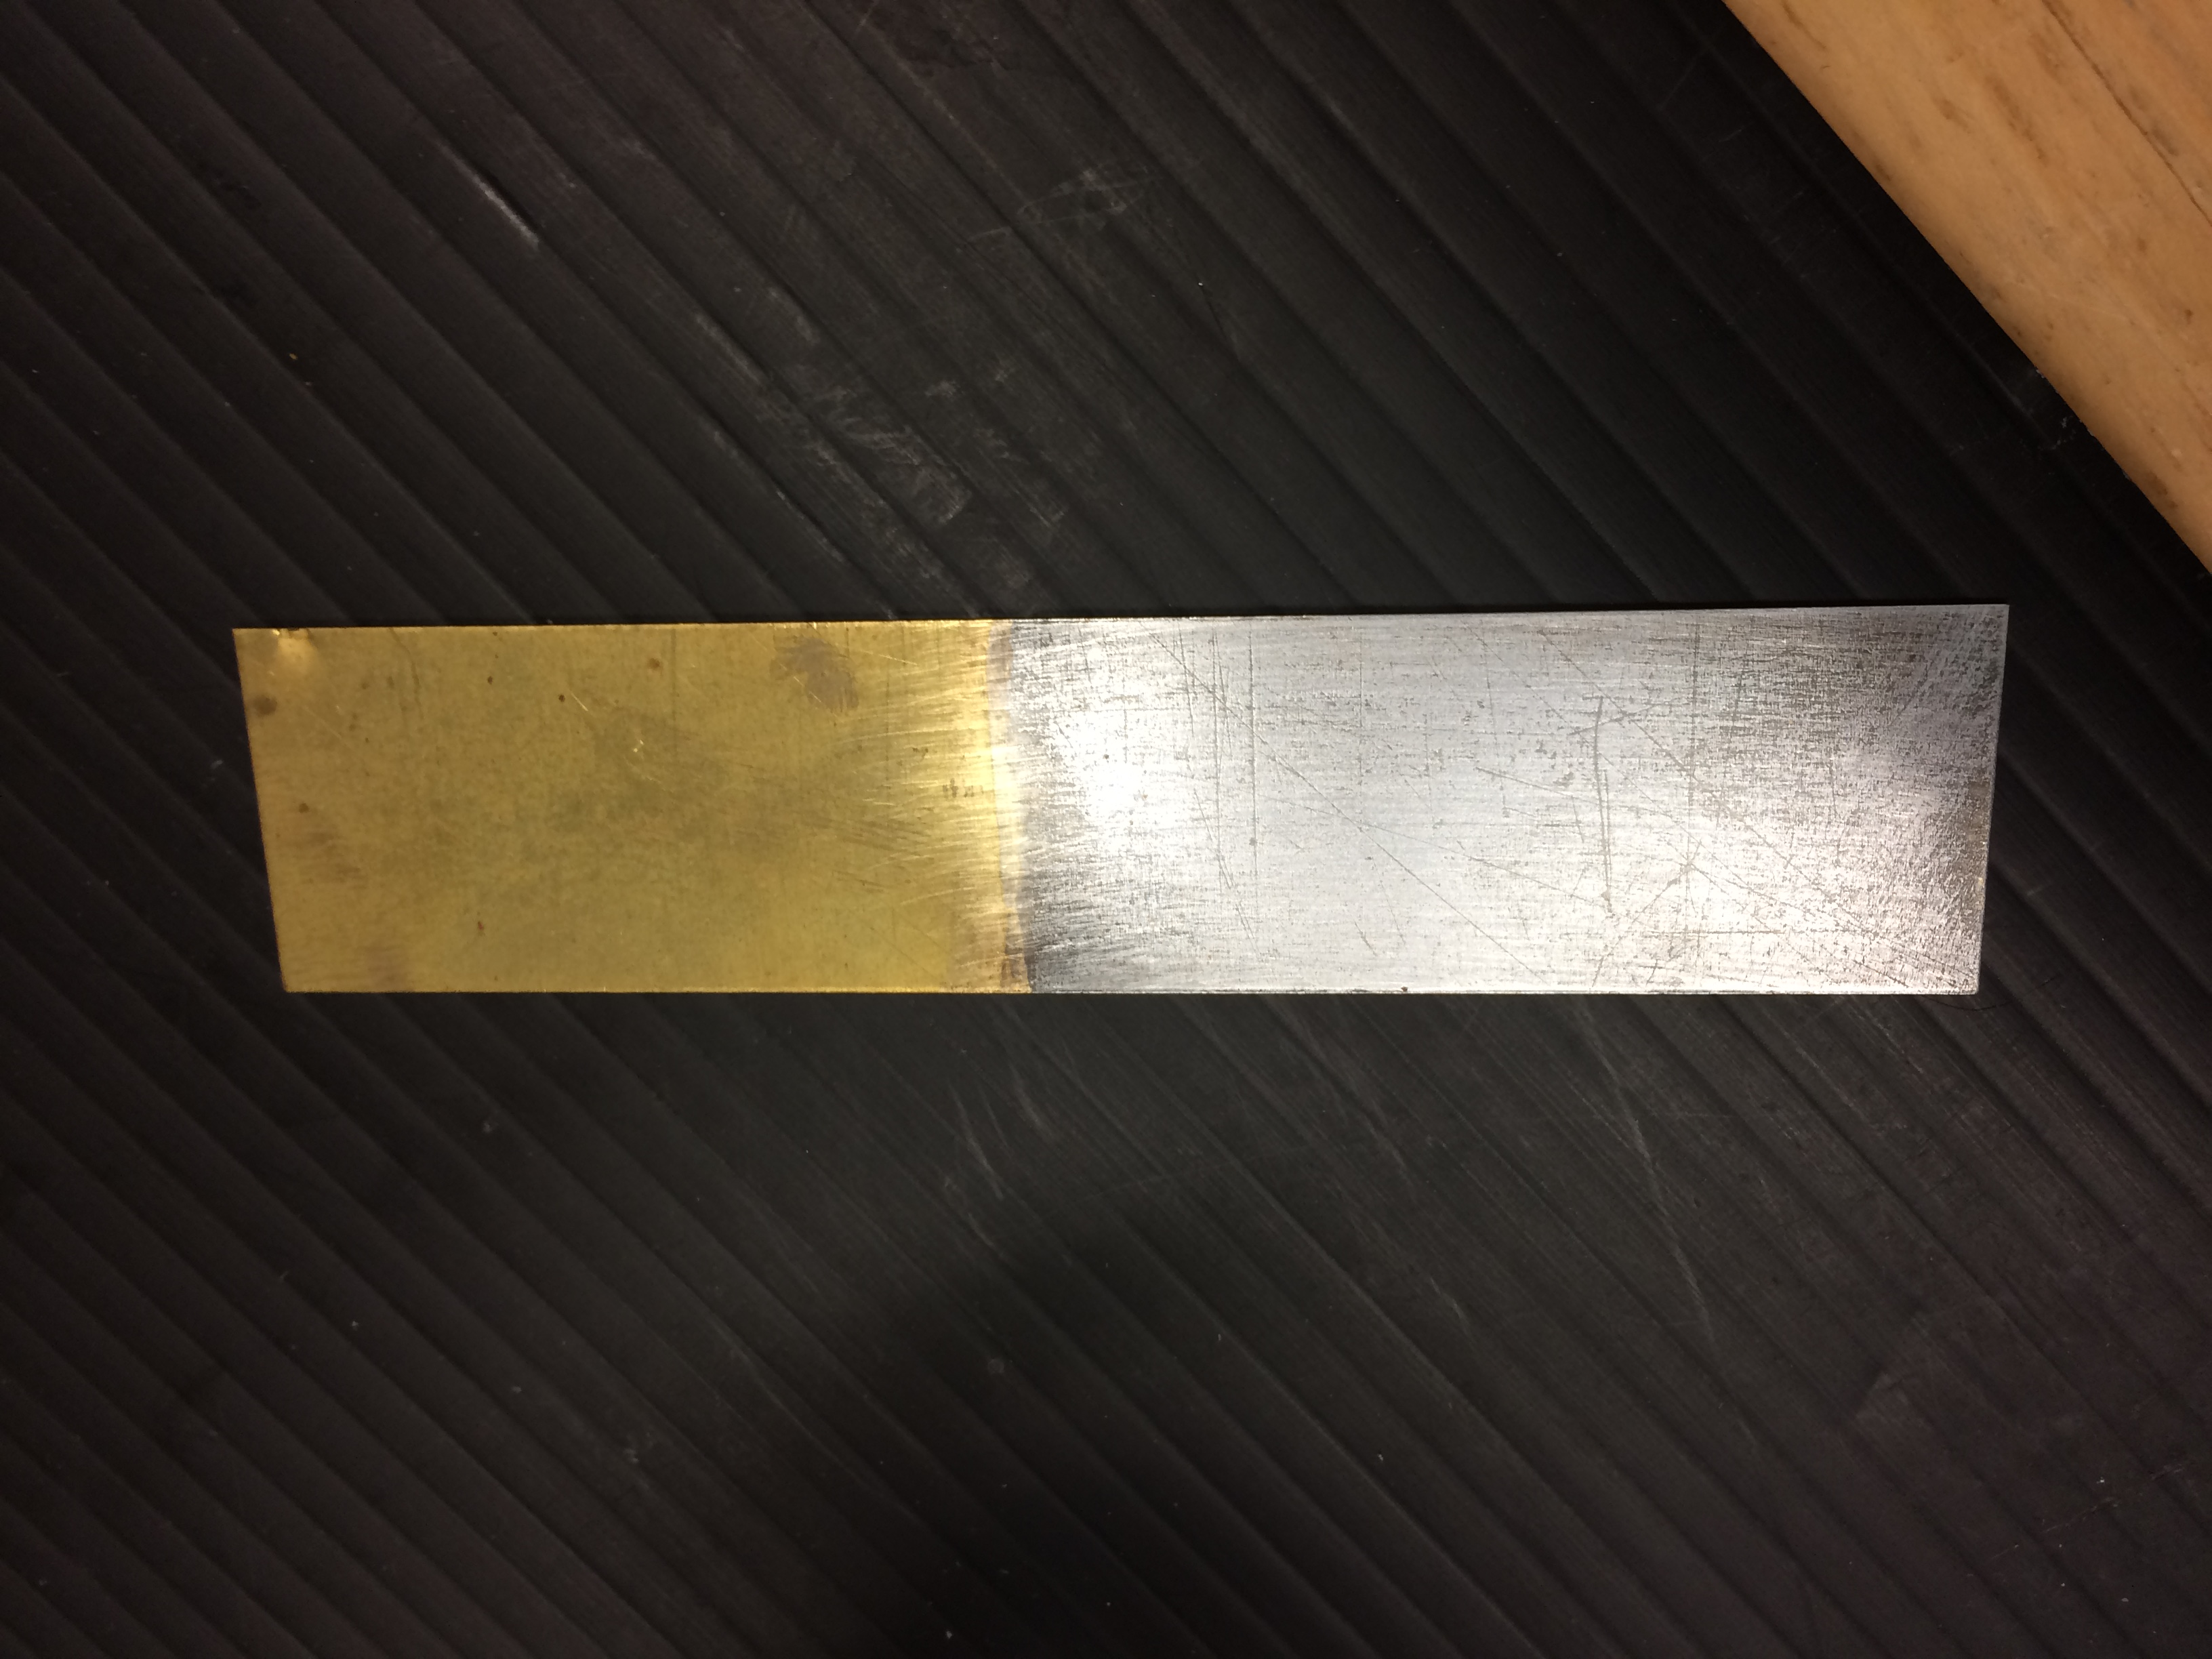 Electrolysis: Zinc metal plated on a copper electrode